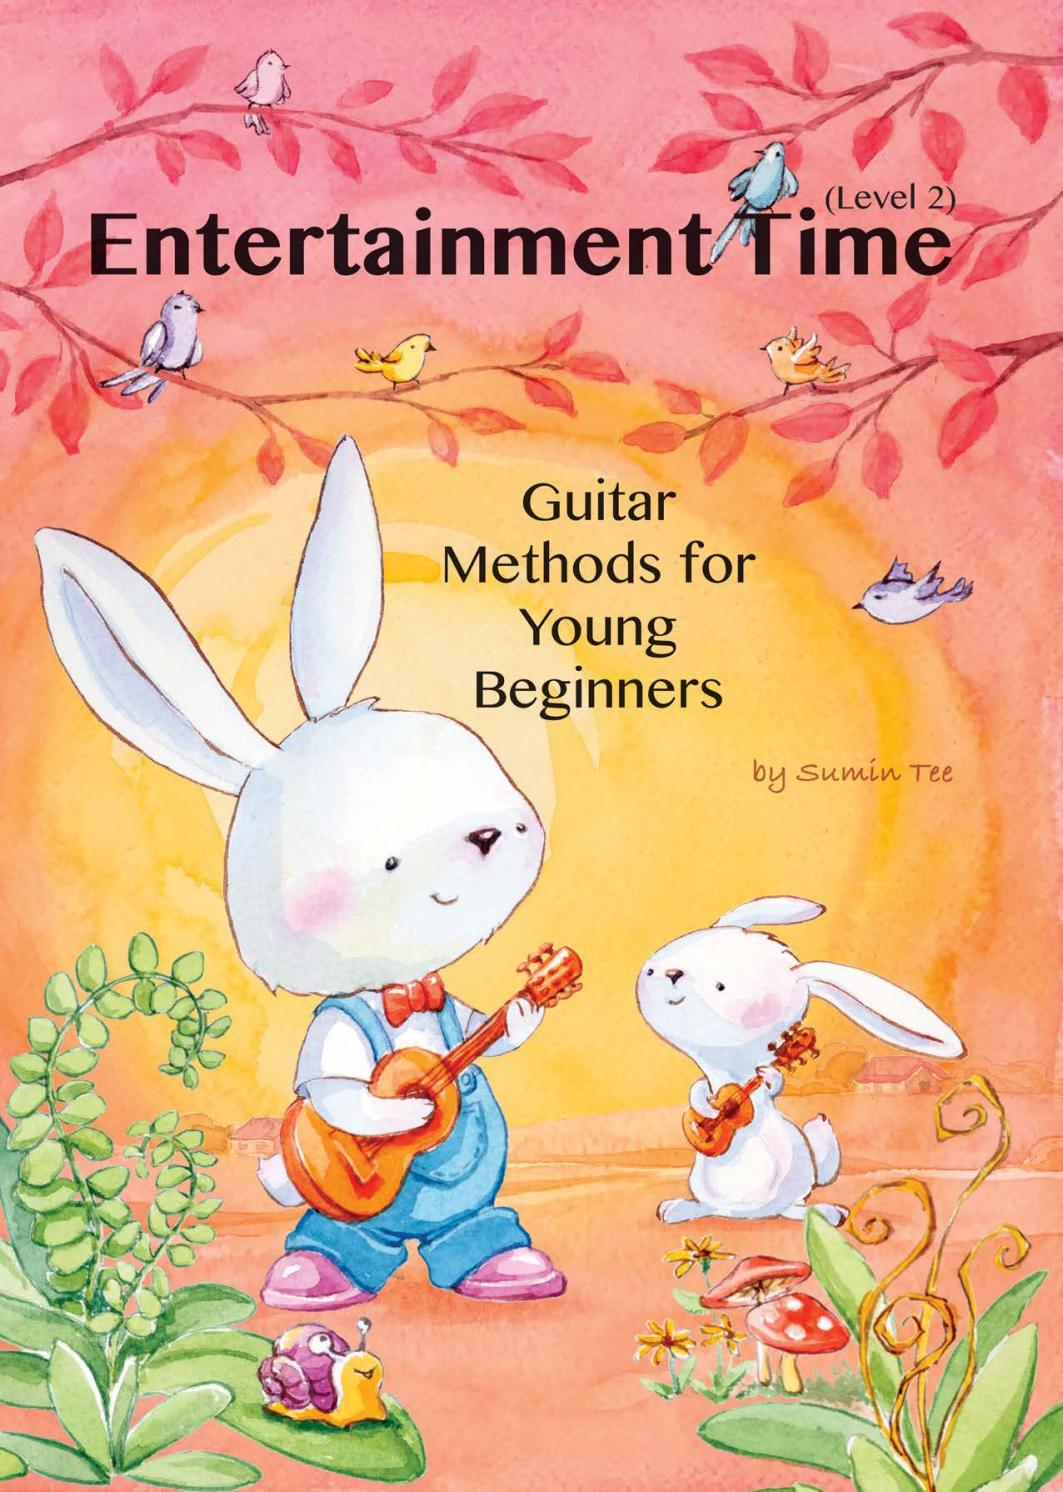 Guitar Methods for Young Beginners - Entertainment Time - Level 2 - soft cover